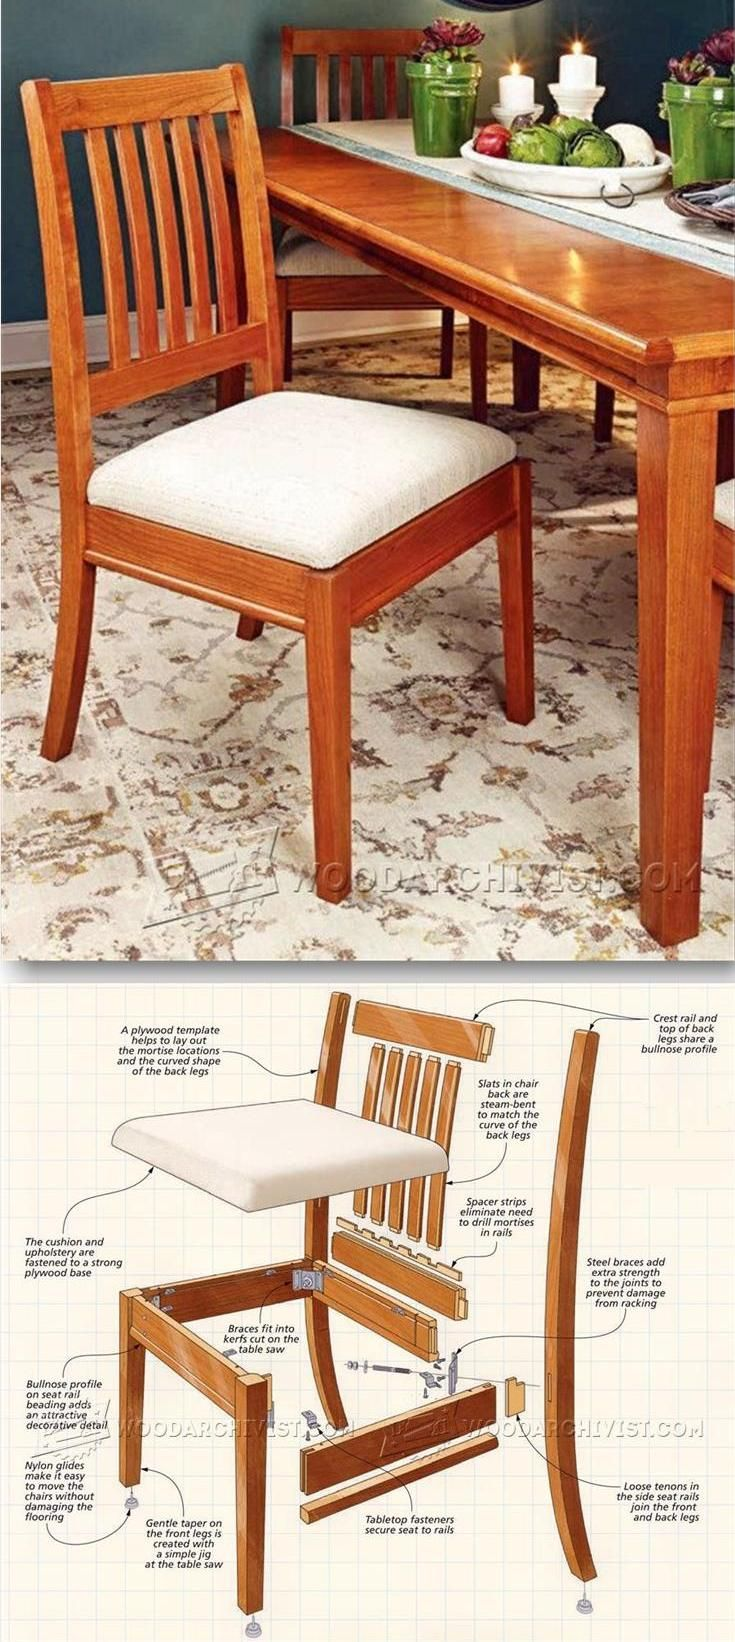 10 best ideas about woodworking plans on pinterest - Woodworking plans bedroom furniture ...